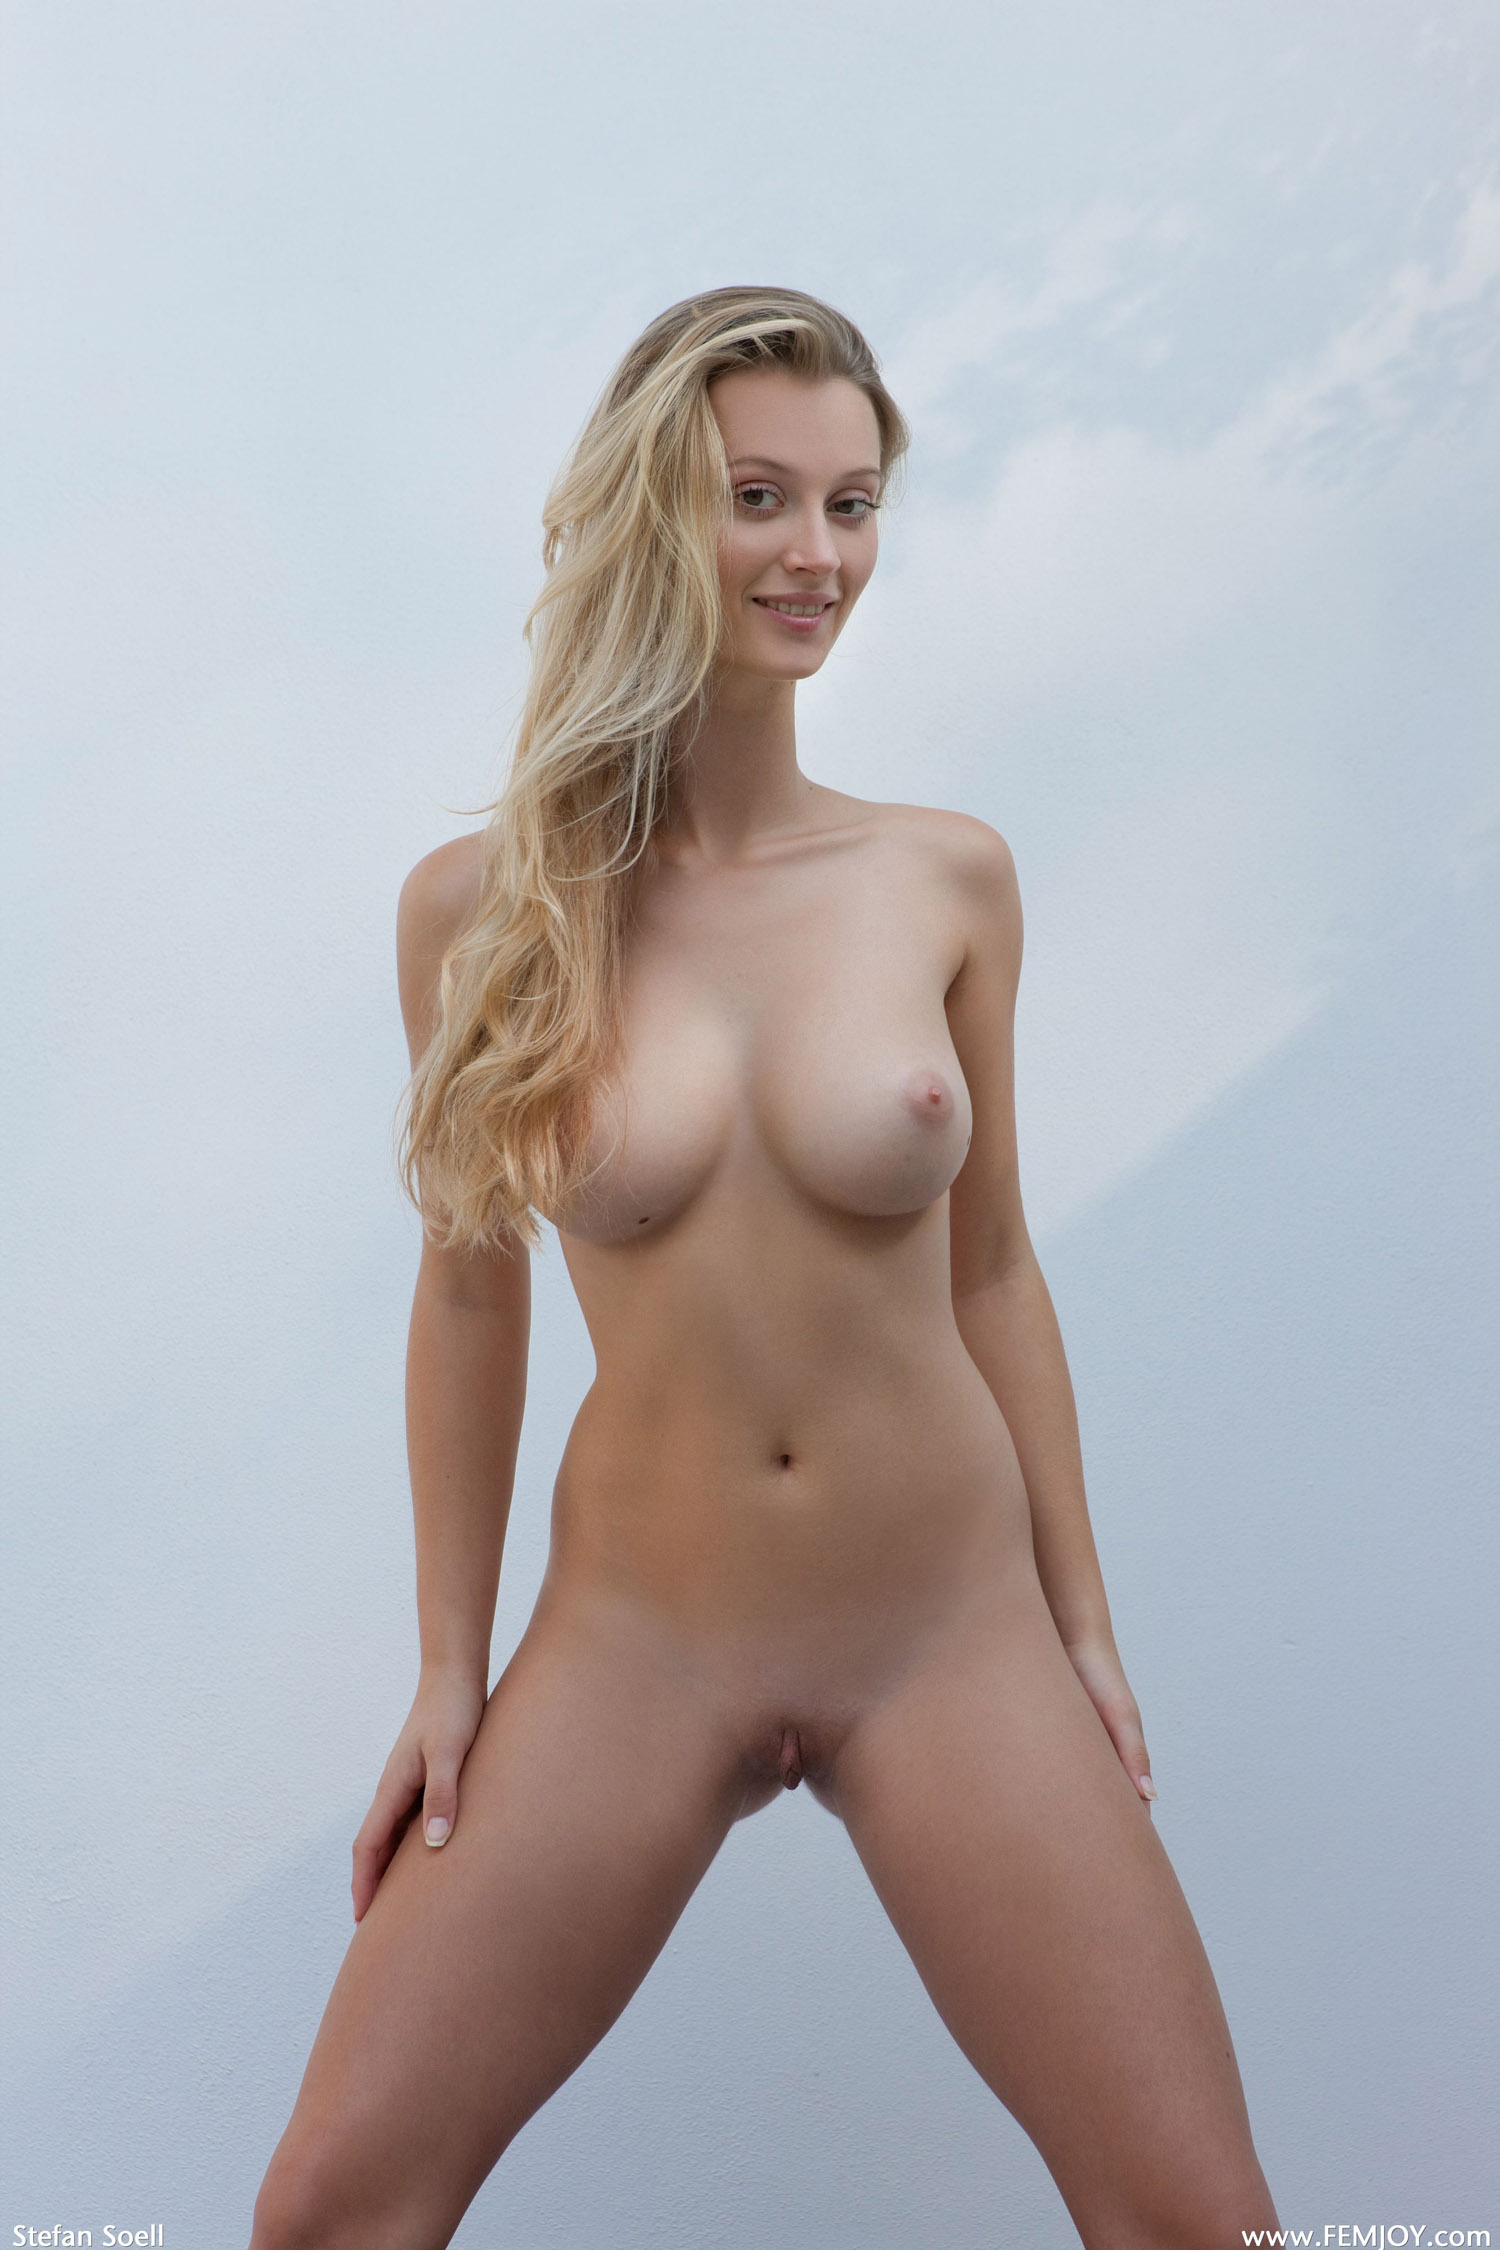 Can carisha cherry nude for